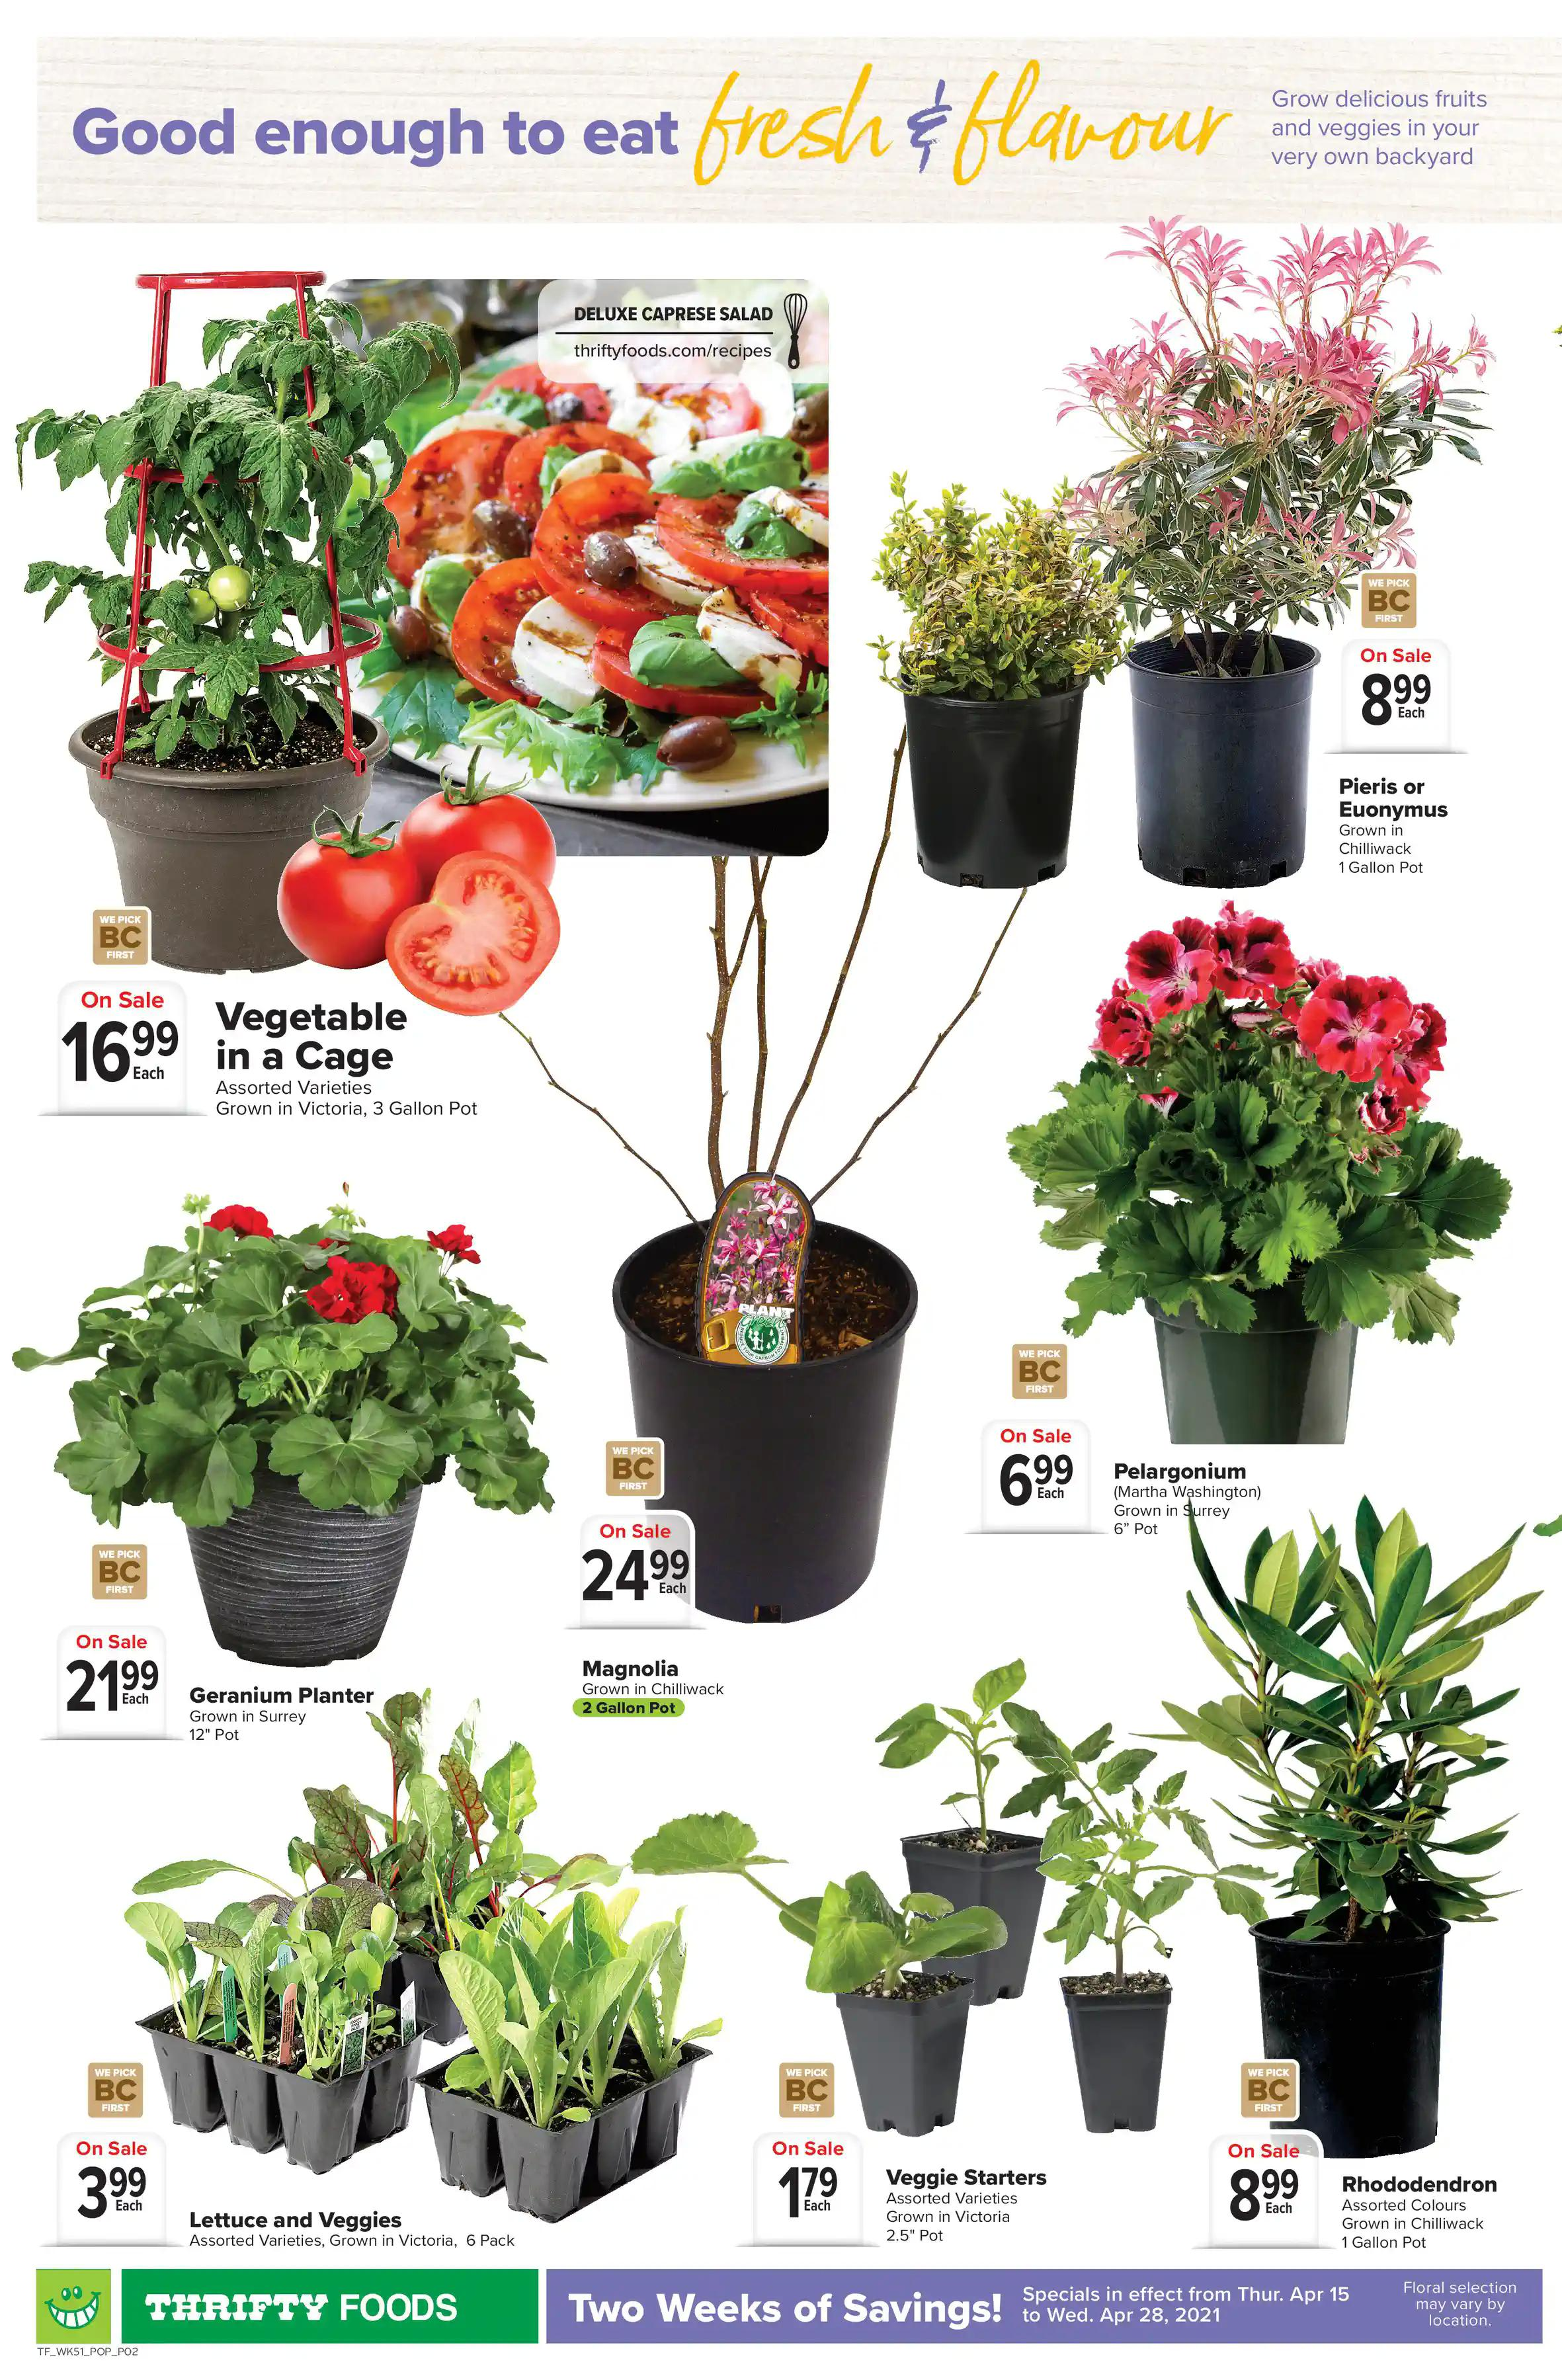 Thrifty Foods - Weekly Flyer Specials - Page 8